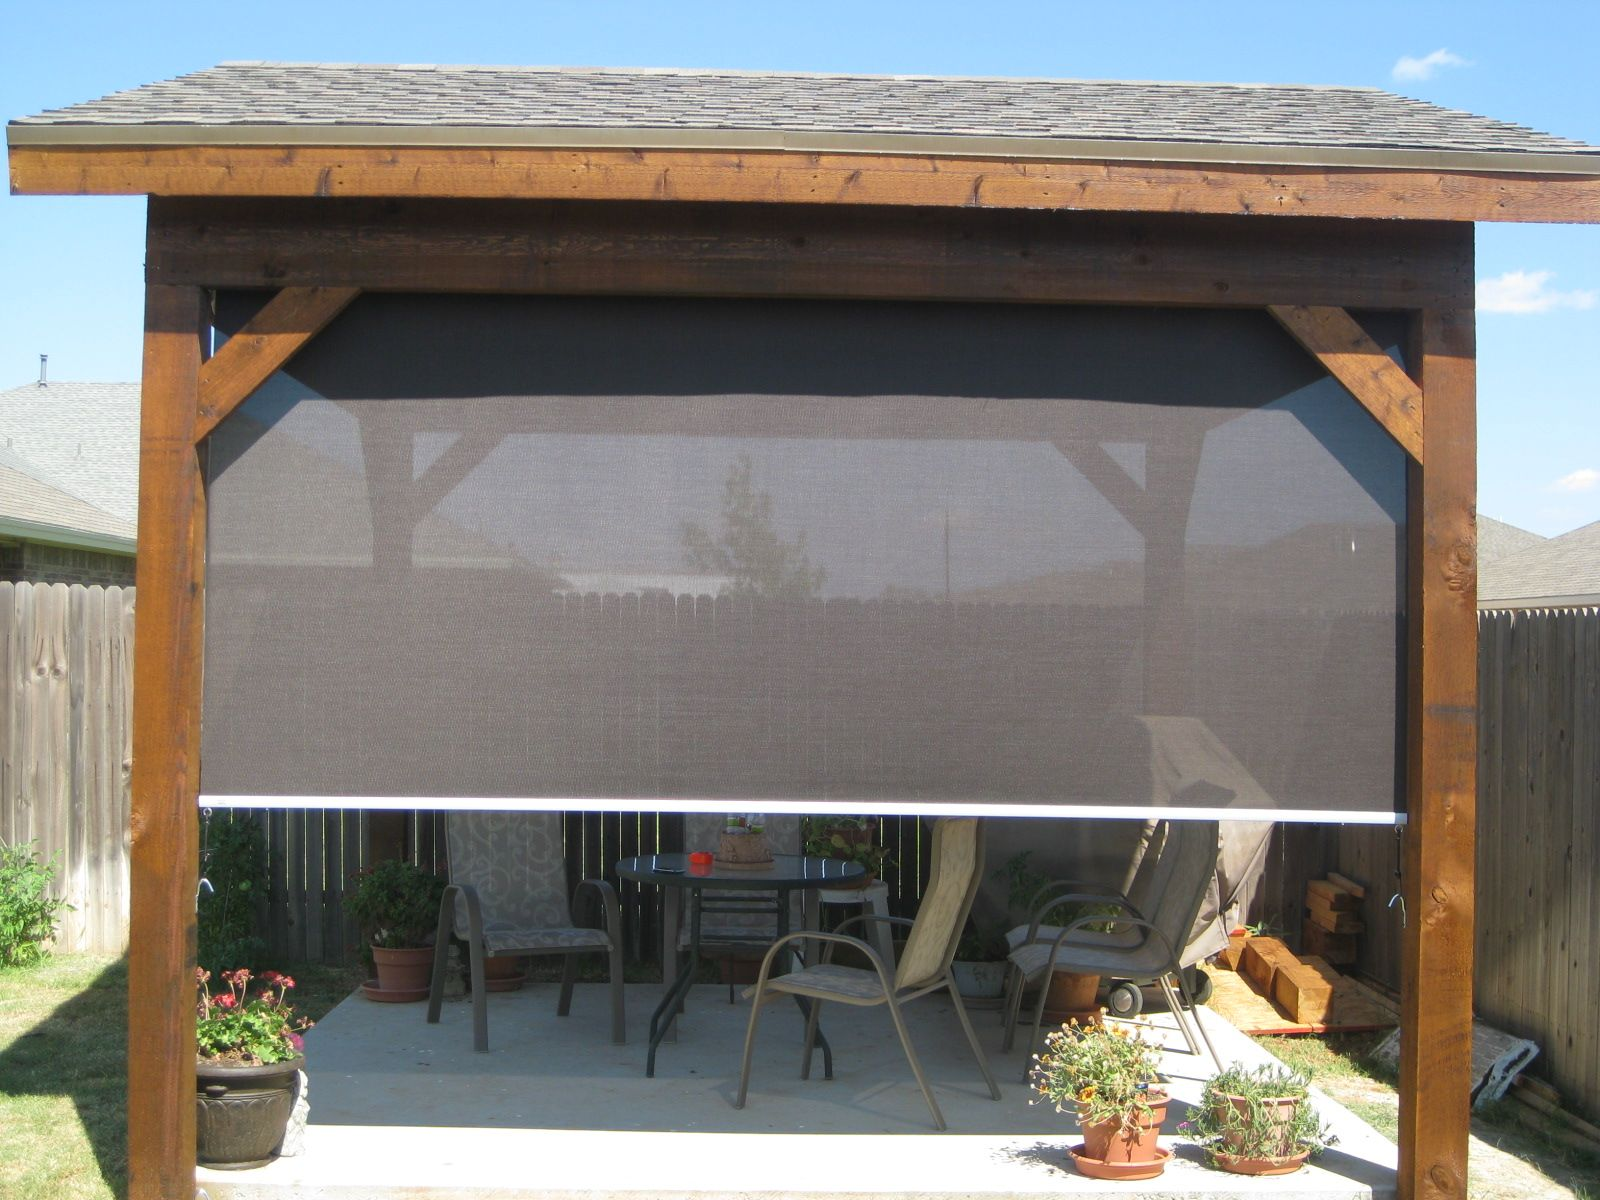 Outdoor Sun Blinds Home Blinds Shutters Roller Shades Patio Shades Solar